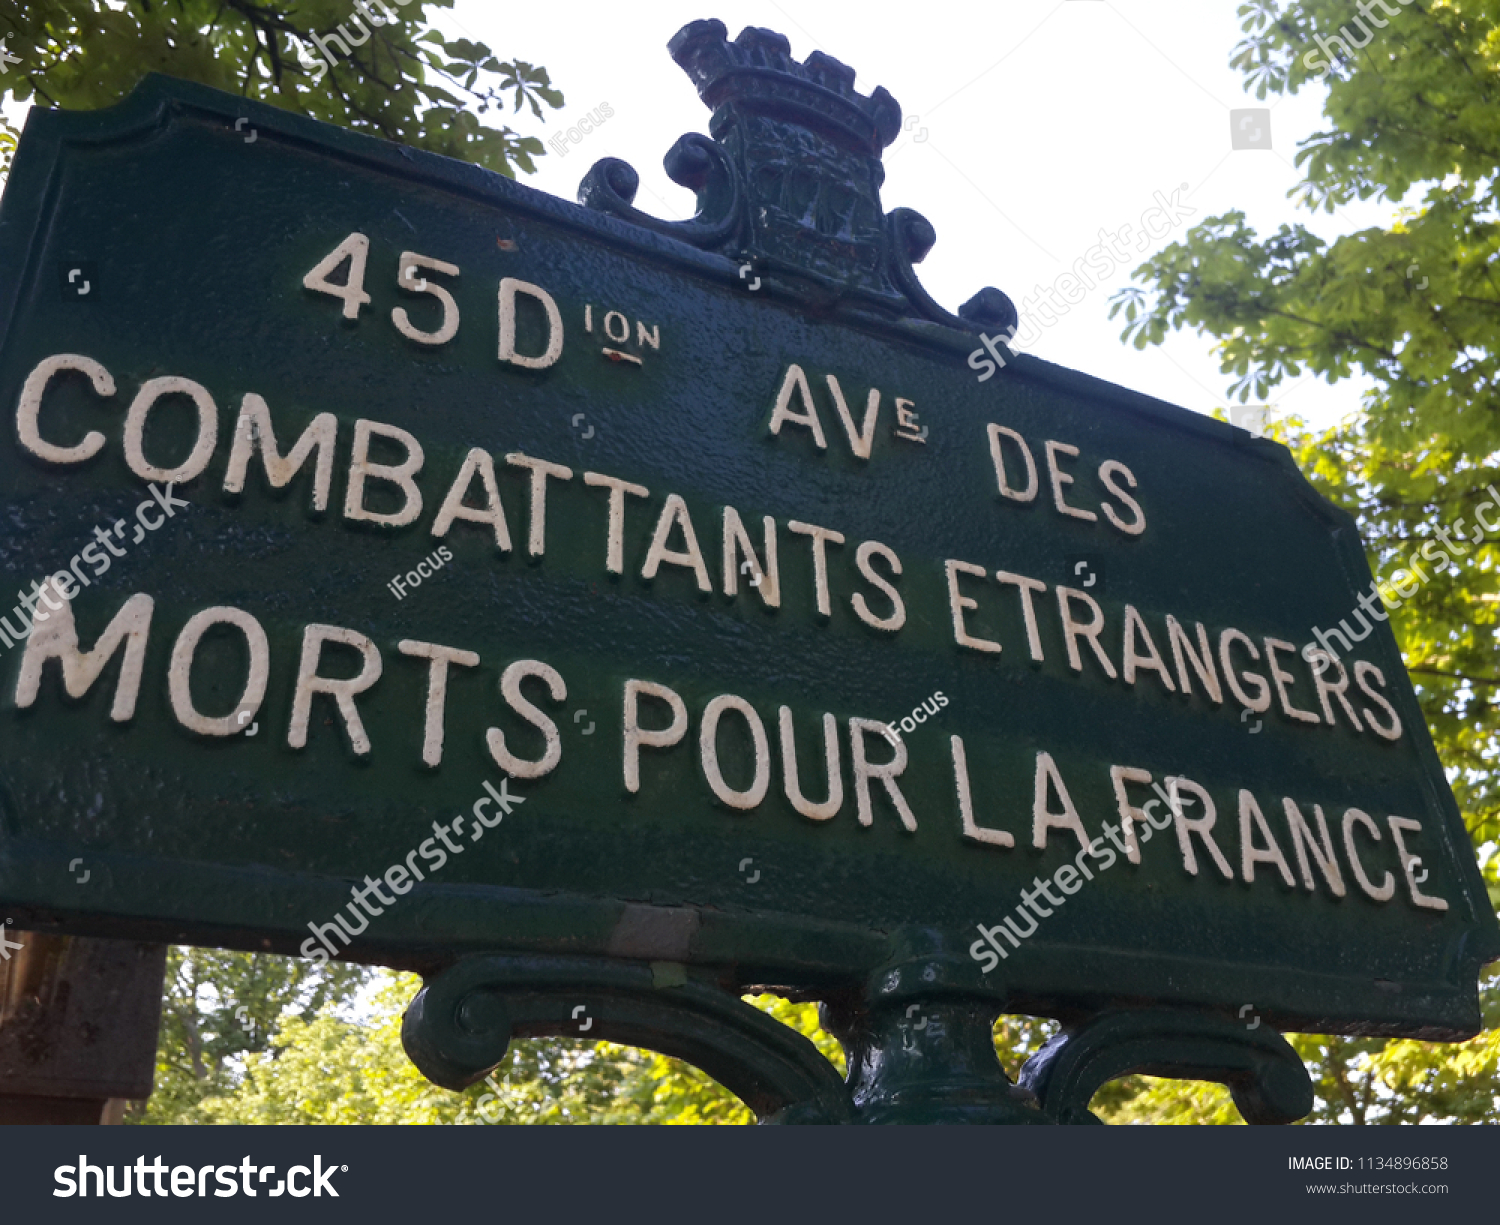 PARIS, FRANCE - JUNE 30, 2018: A street name plate commemorates foreign fighters on the grounds of Pere Lachaise cemetery, on June 30, 2018 in Paris, France.